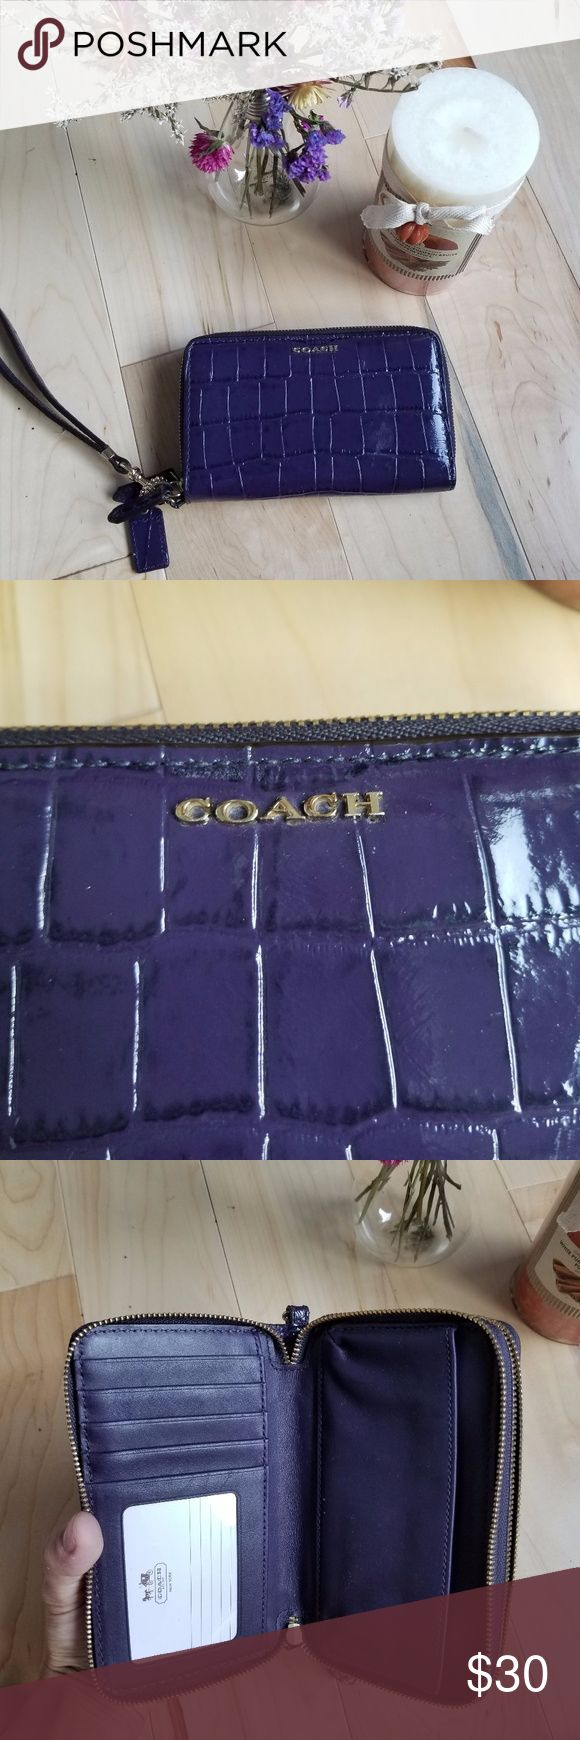 Purple Coach Wallet Faux alligator leather Coach wallet,  easily fits an iPhone or Galaxy phone. Lots of space for cards & coins & things with 2 separate zipped areas. Looks brand new and has detachable wristlet keychain. Coach Bags Wallets